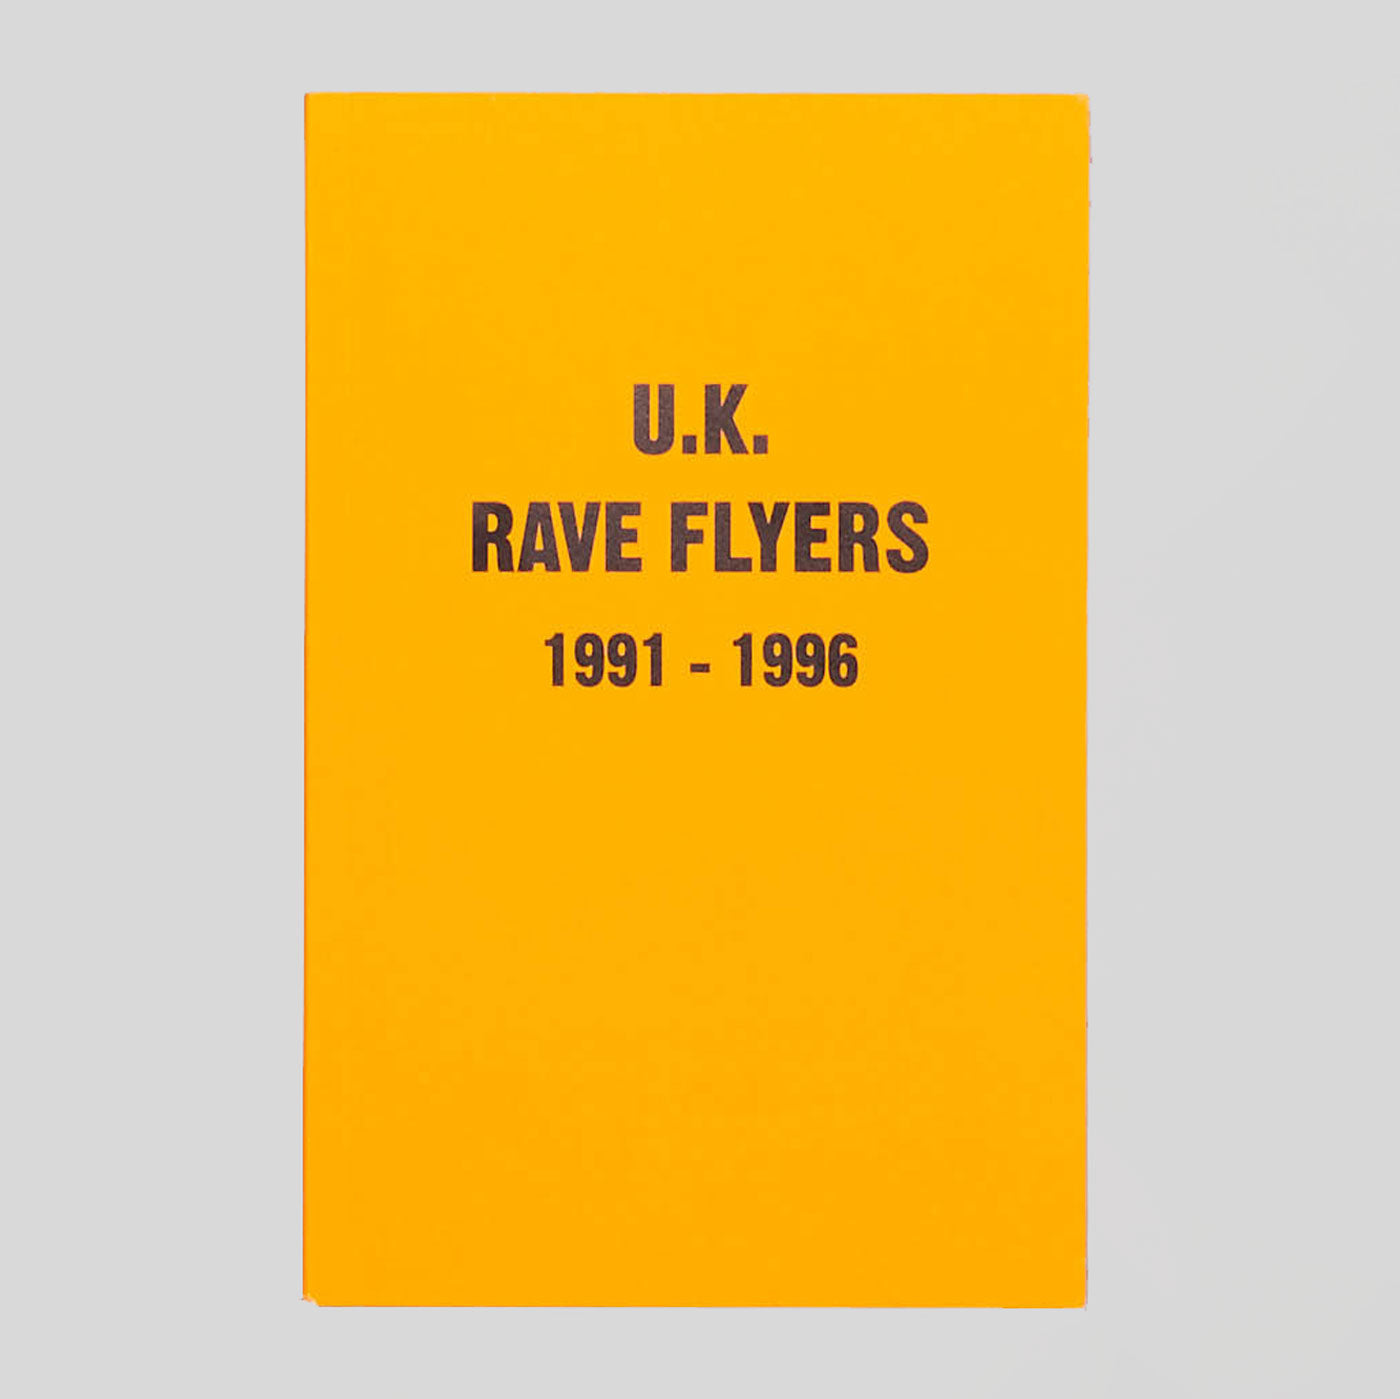 UK Rave Flyers 1991-1996 by Stefania Fiorendi and Junior Tomlin.